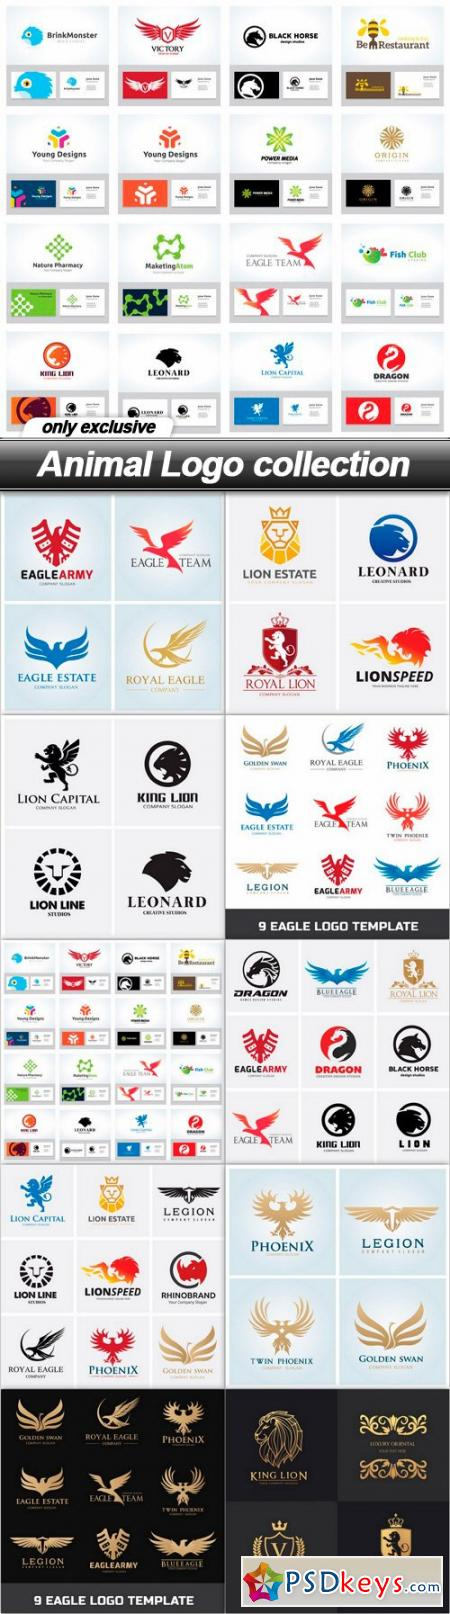 Animal Logo collection - 10 EPS